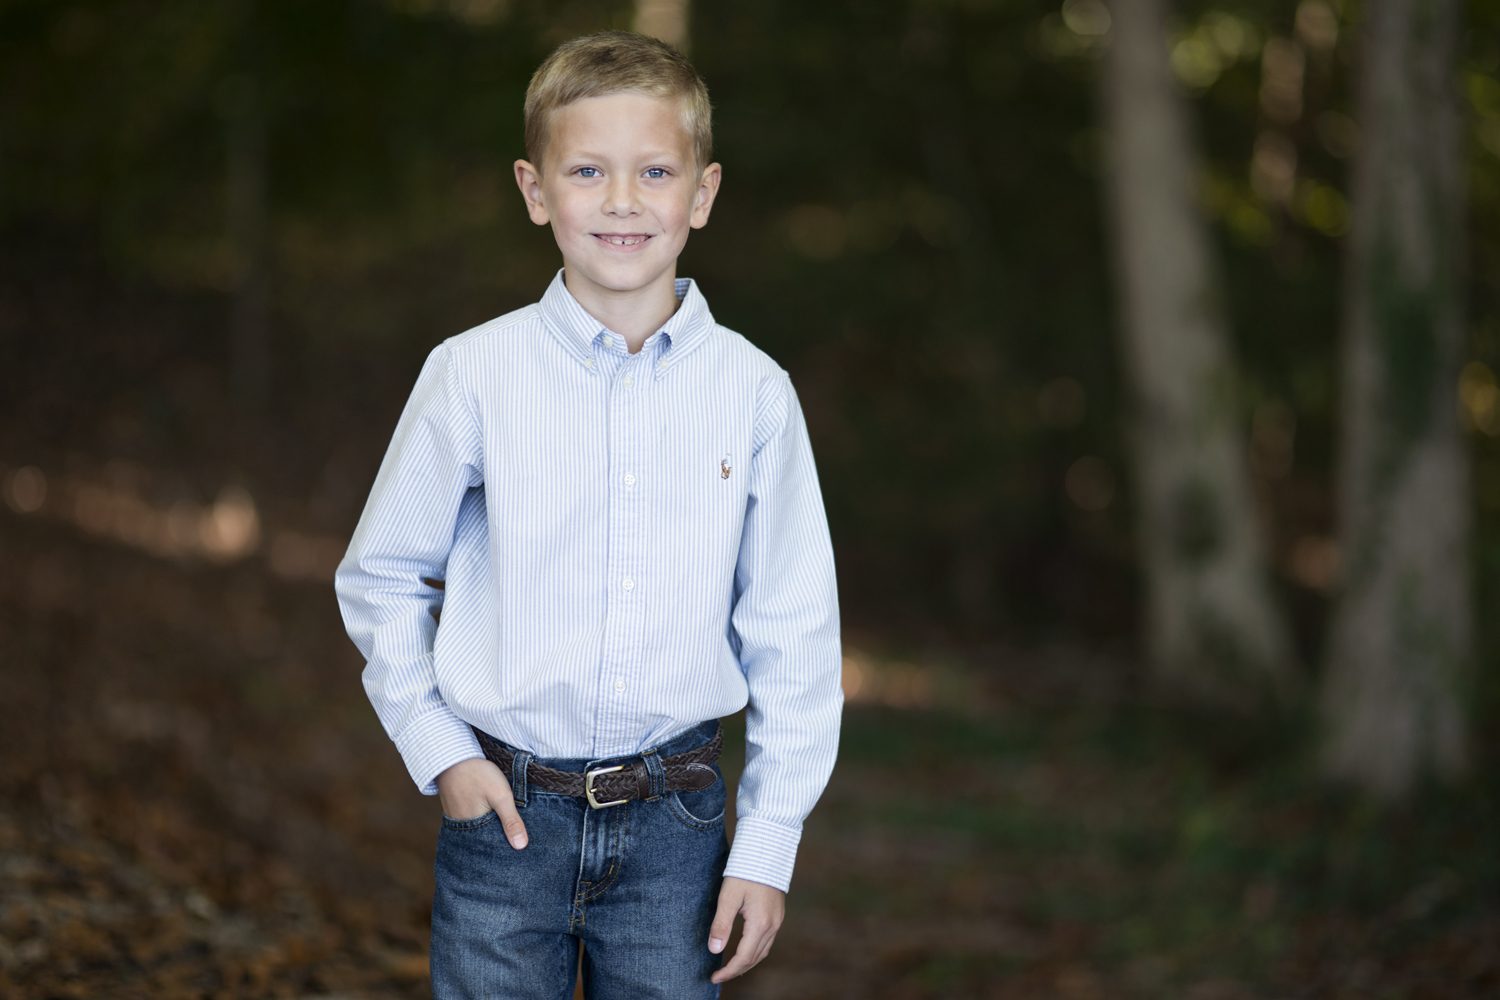 Boy taking family pictures in the fall with jeans and a blue shirt